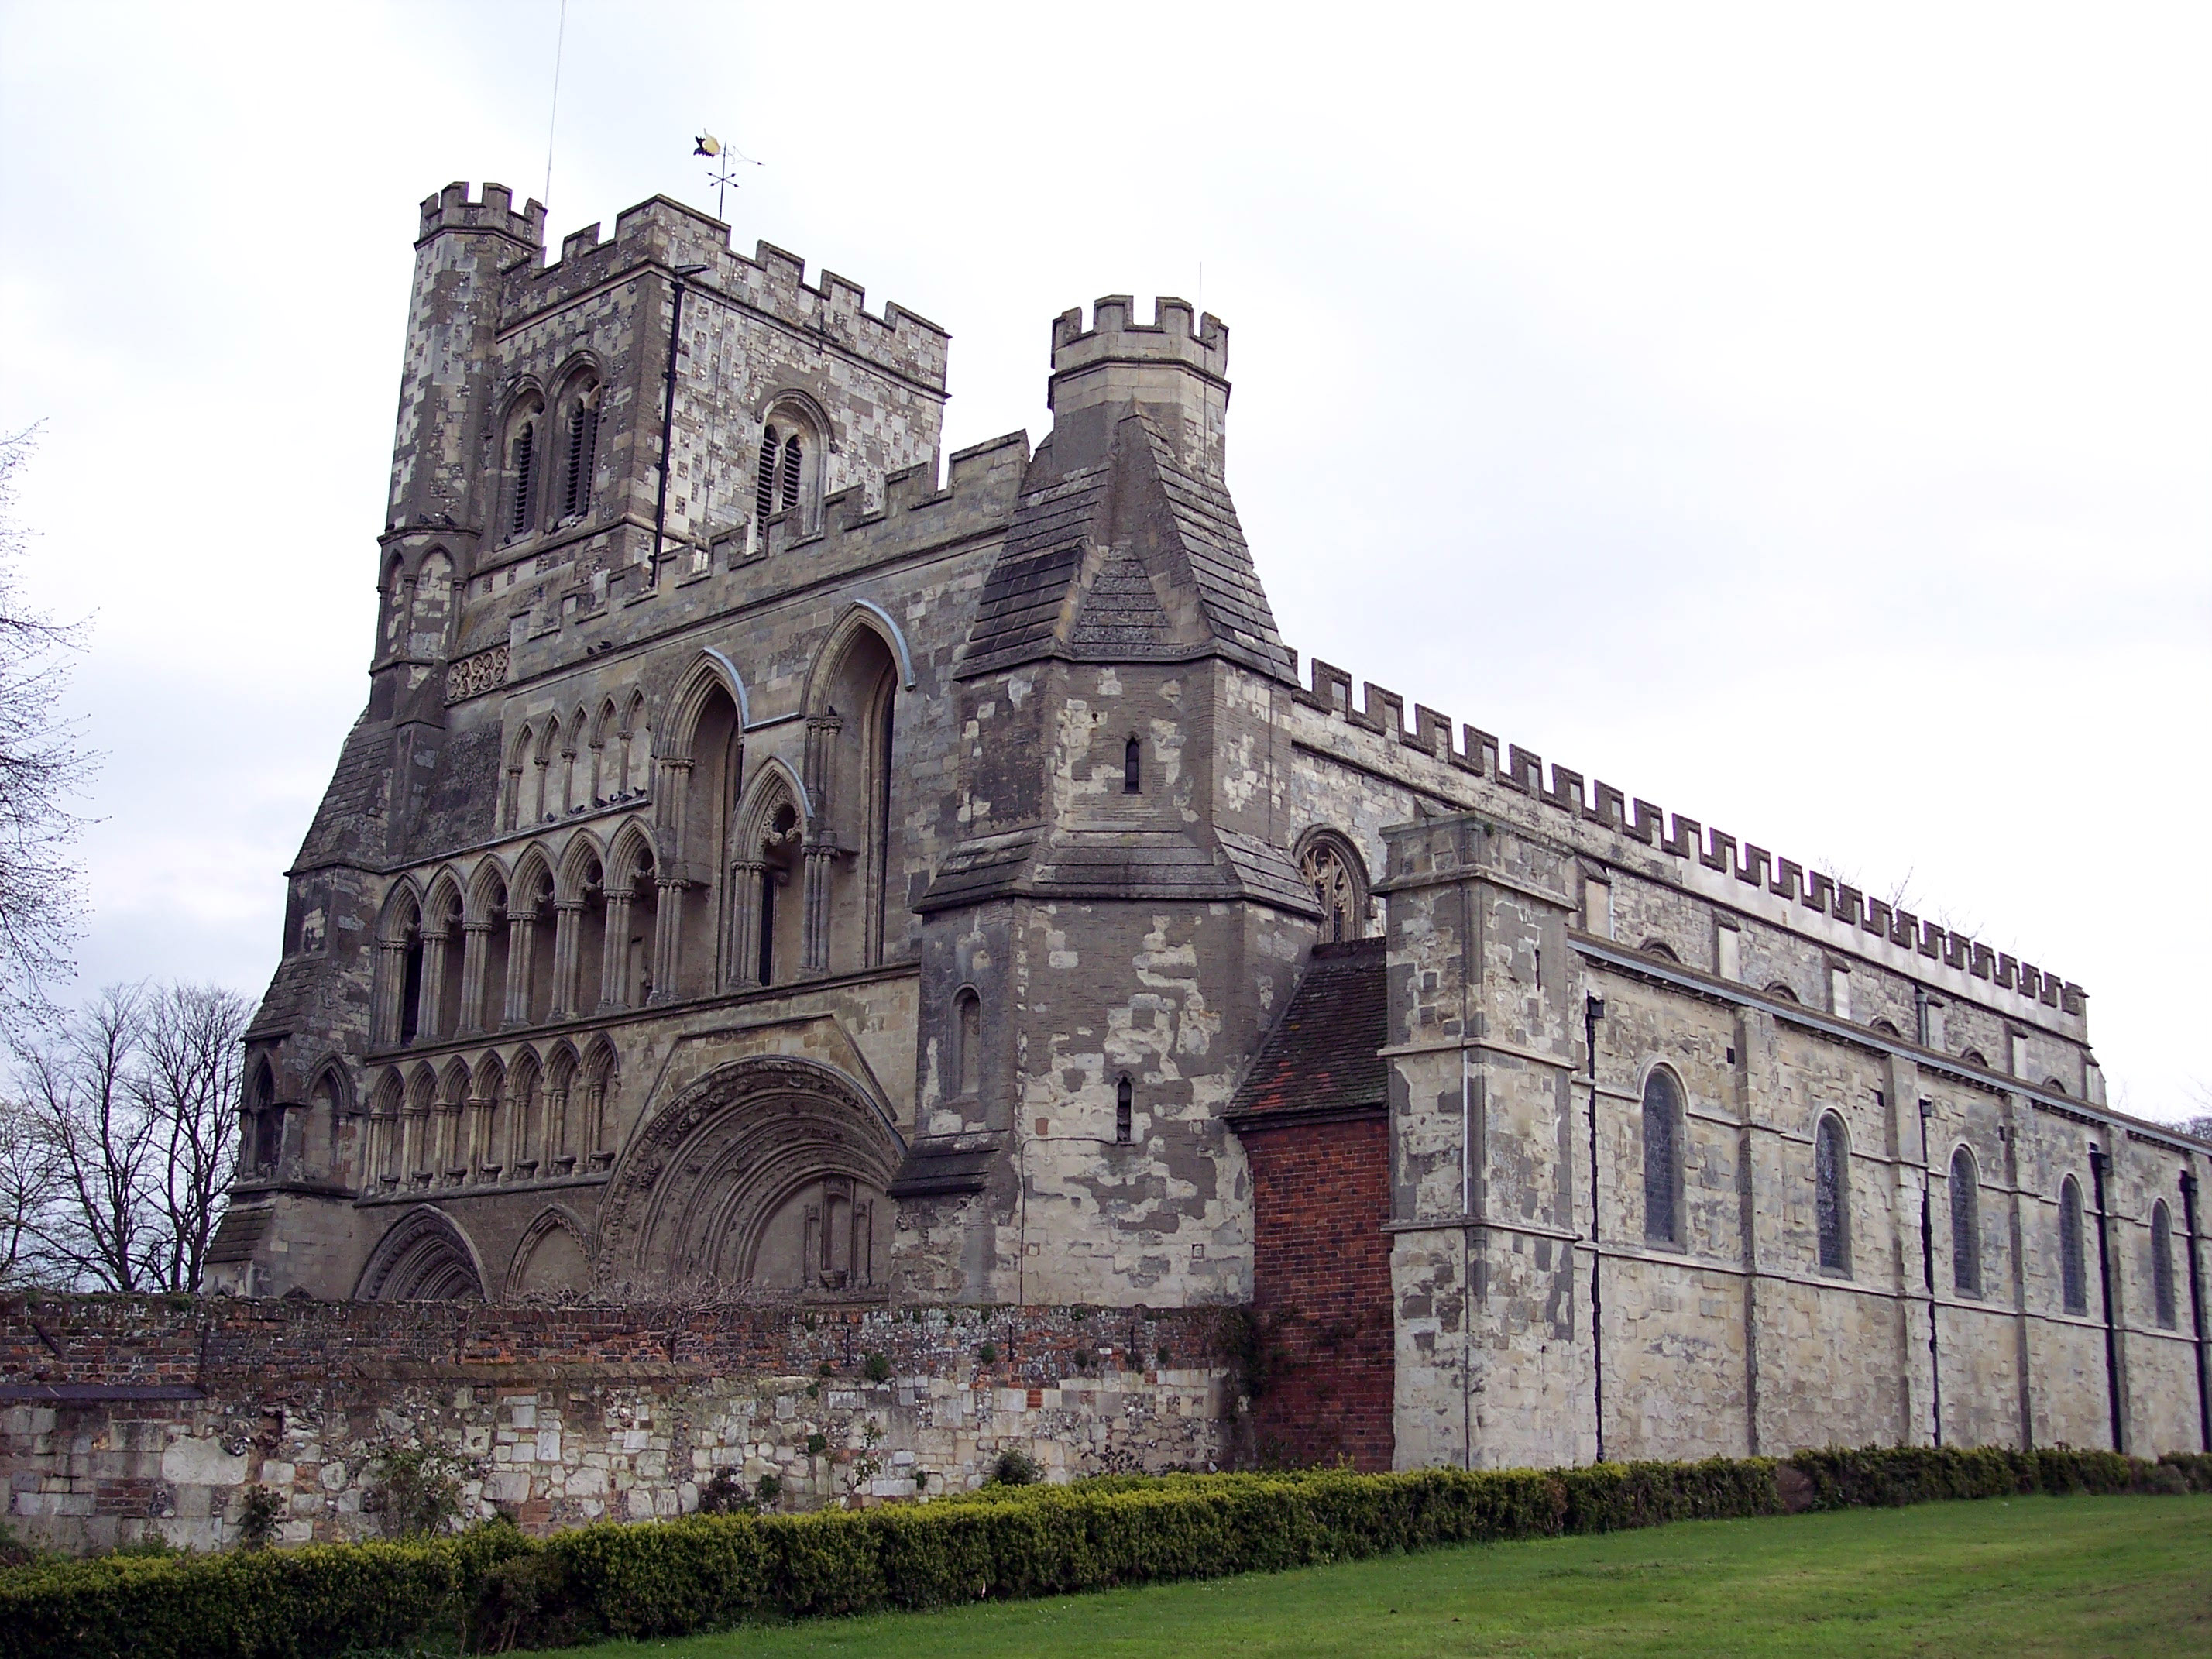 Part of the former Dunstable Priory, originally founded by Henry I in 1131.  Home to an order of canons who ruled the town.  They possessed power of life and death, had their own priory gaol and they sat as judges with the king's justices.  Many people were tired on a variety of crimes, including wi...